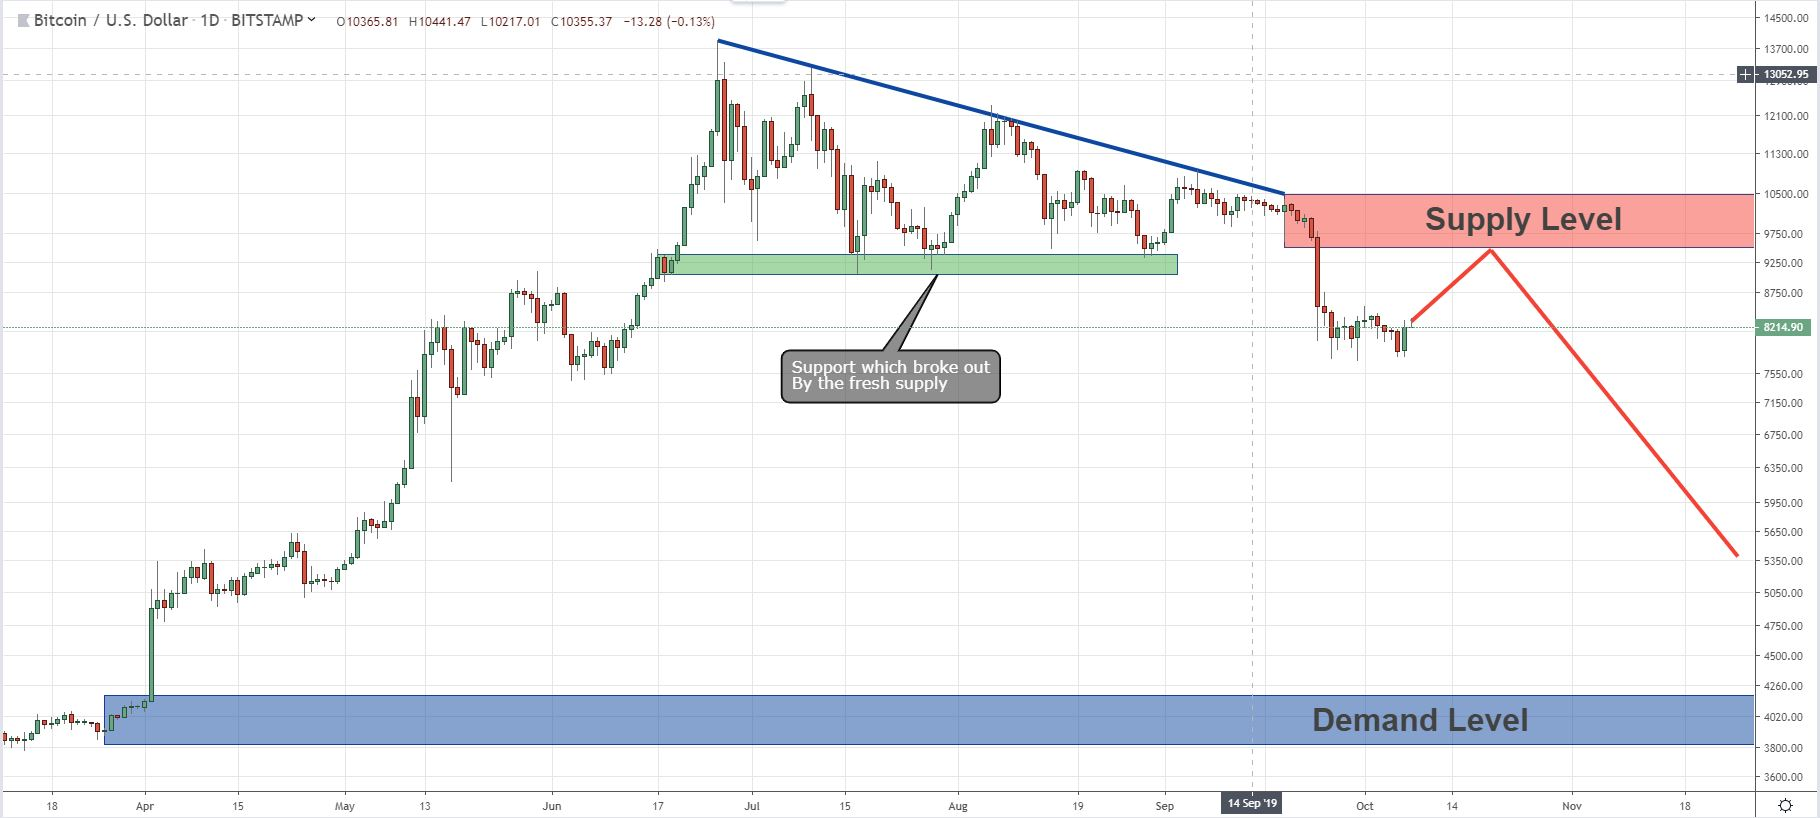 BTC/USD - Long Term Price Action Analysis